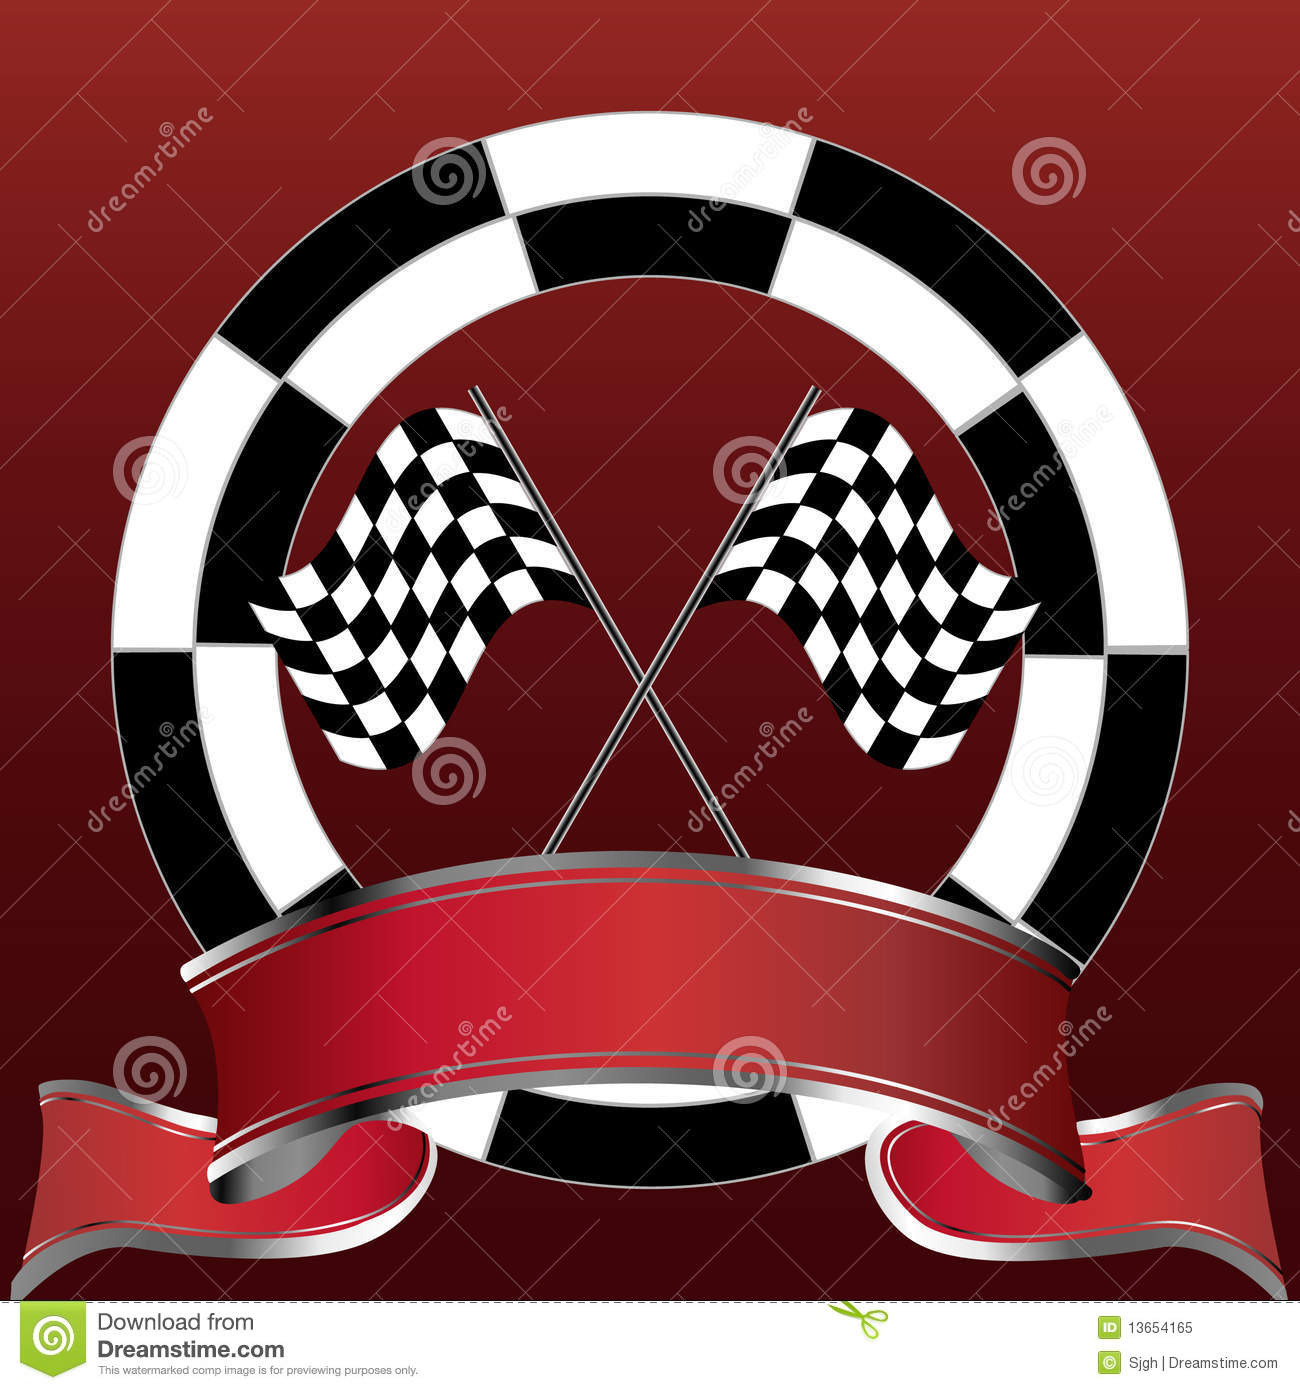 Racing Checkered Flag >> Racing Emblem With Checkered Flags And Red Banner Stock Vector - Image: 13654165